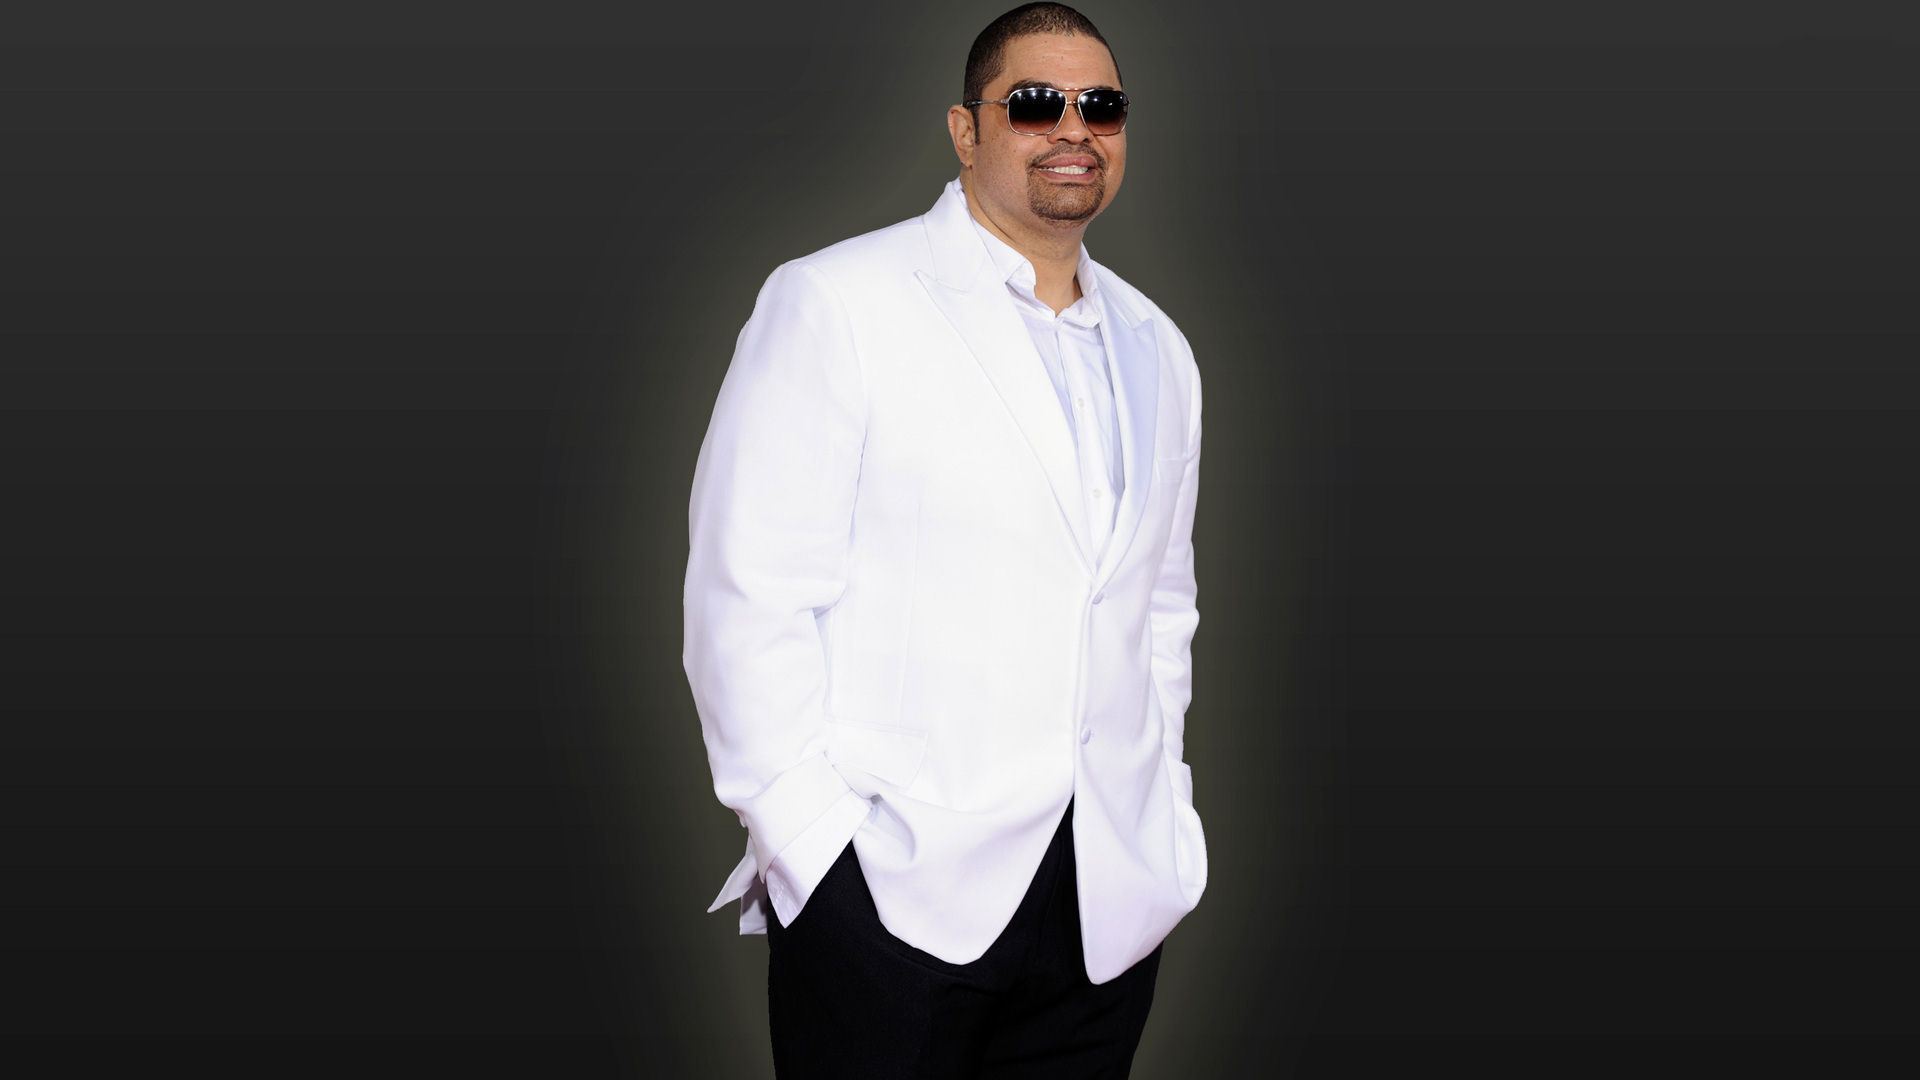 Nuttin' But Love av Heavy D.